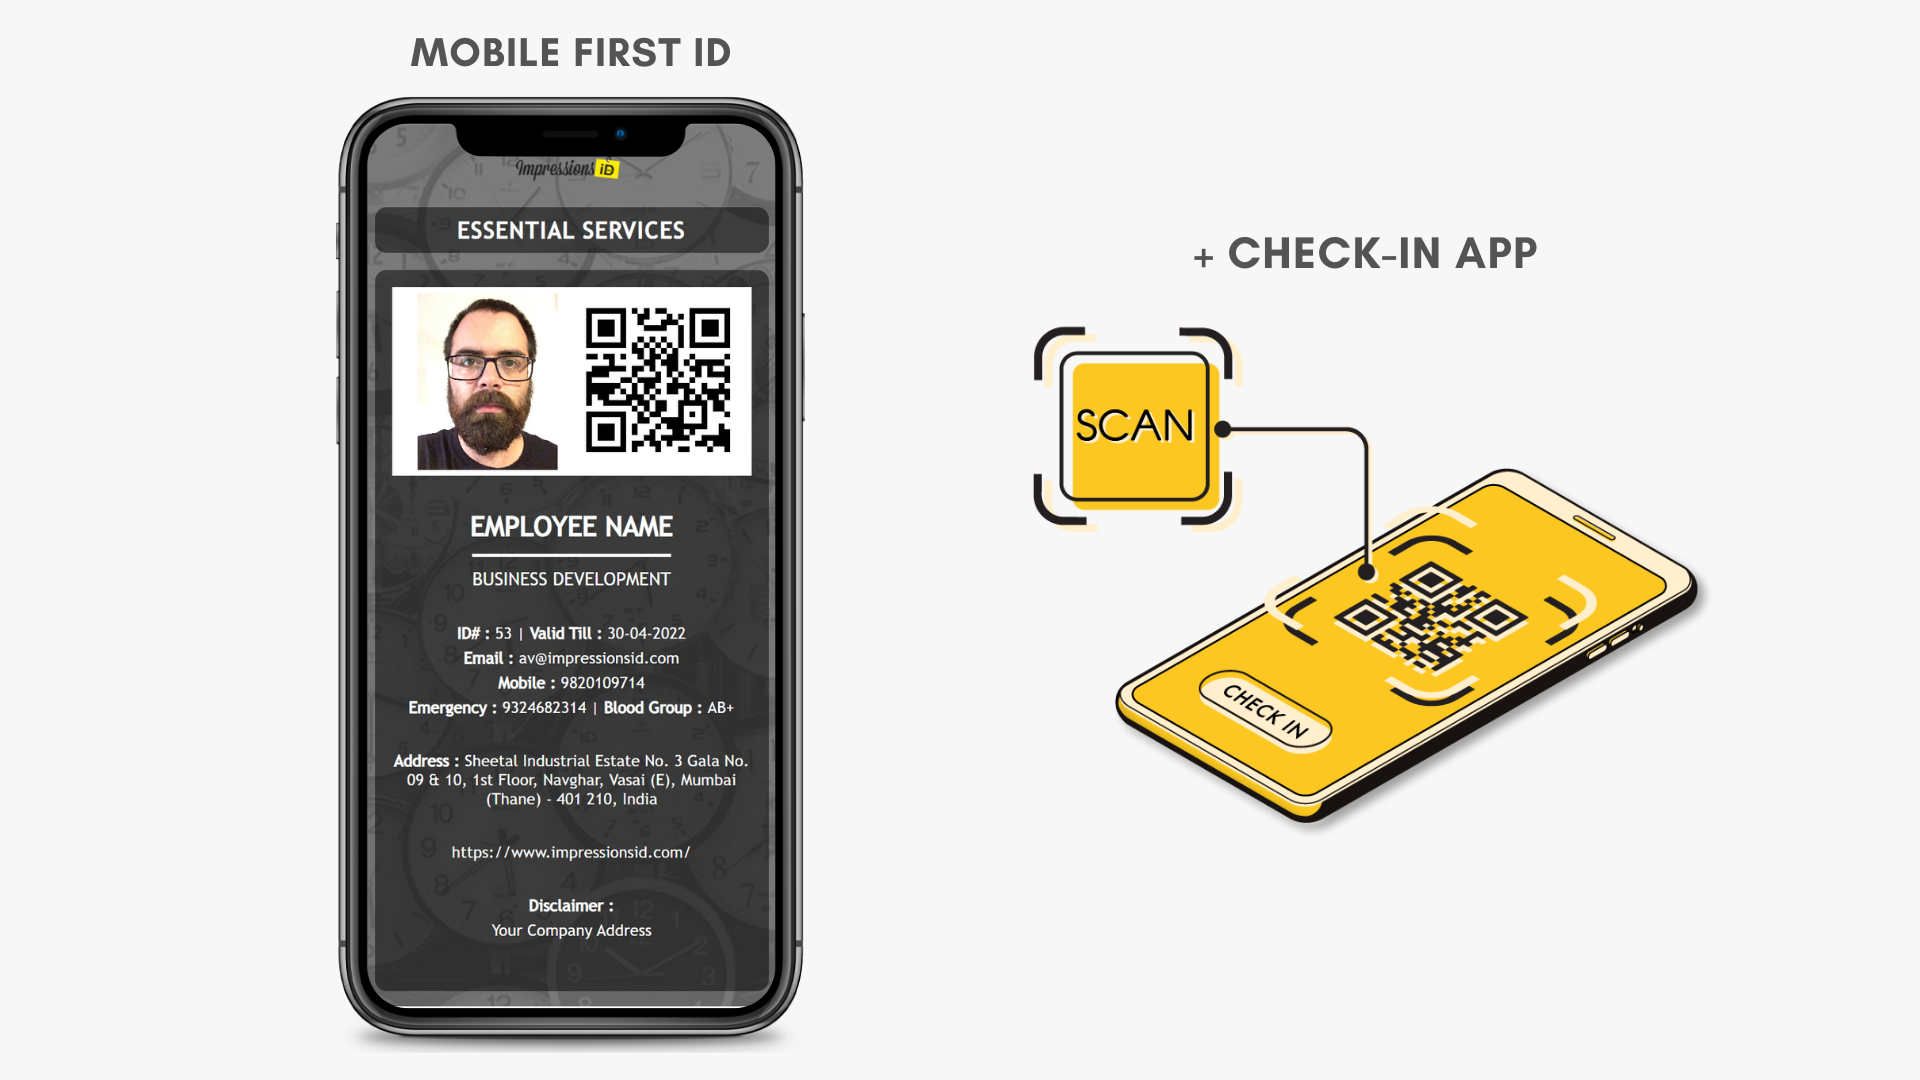 Mobile ID & Check-in App